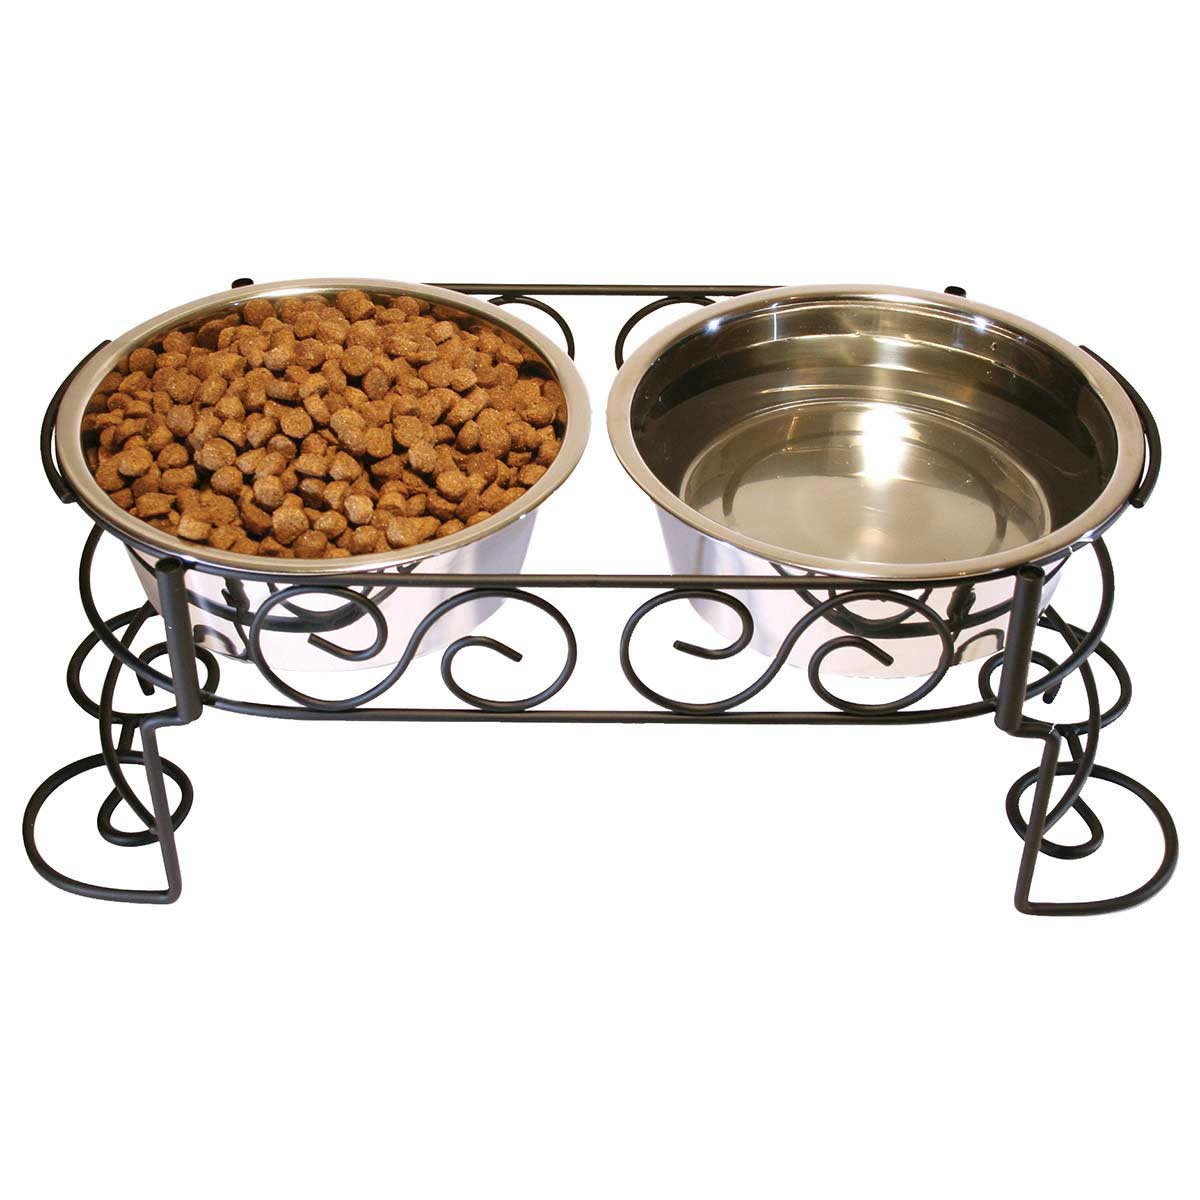 1 Quart Ethical Mediterranean Old World Stainless Steel Double Diner for Dogs